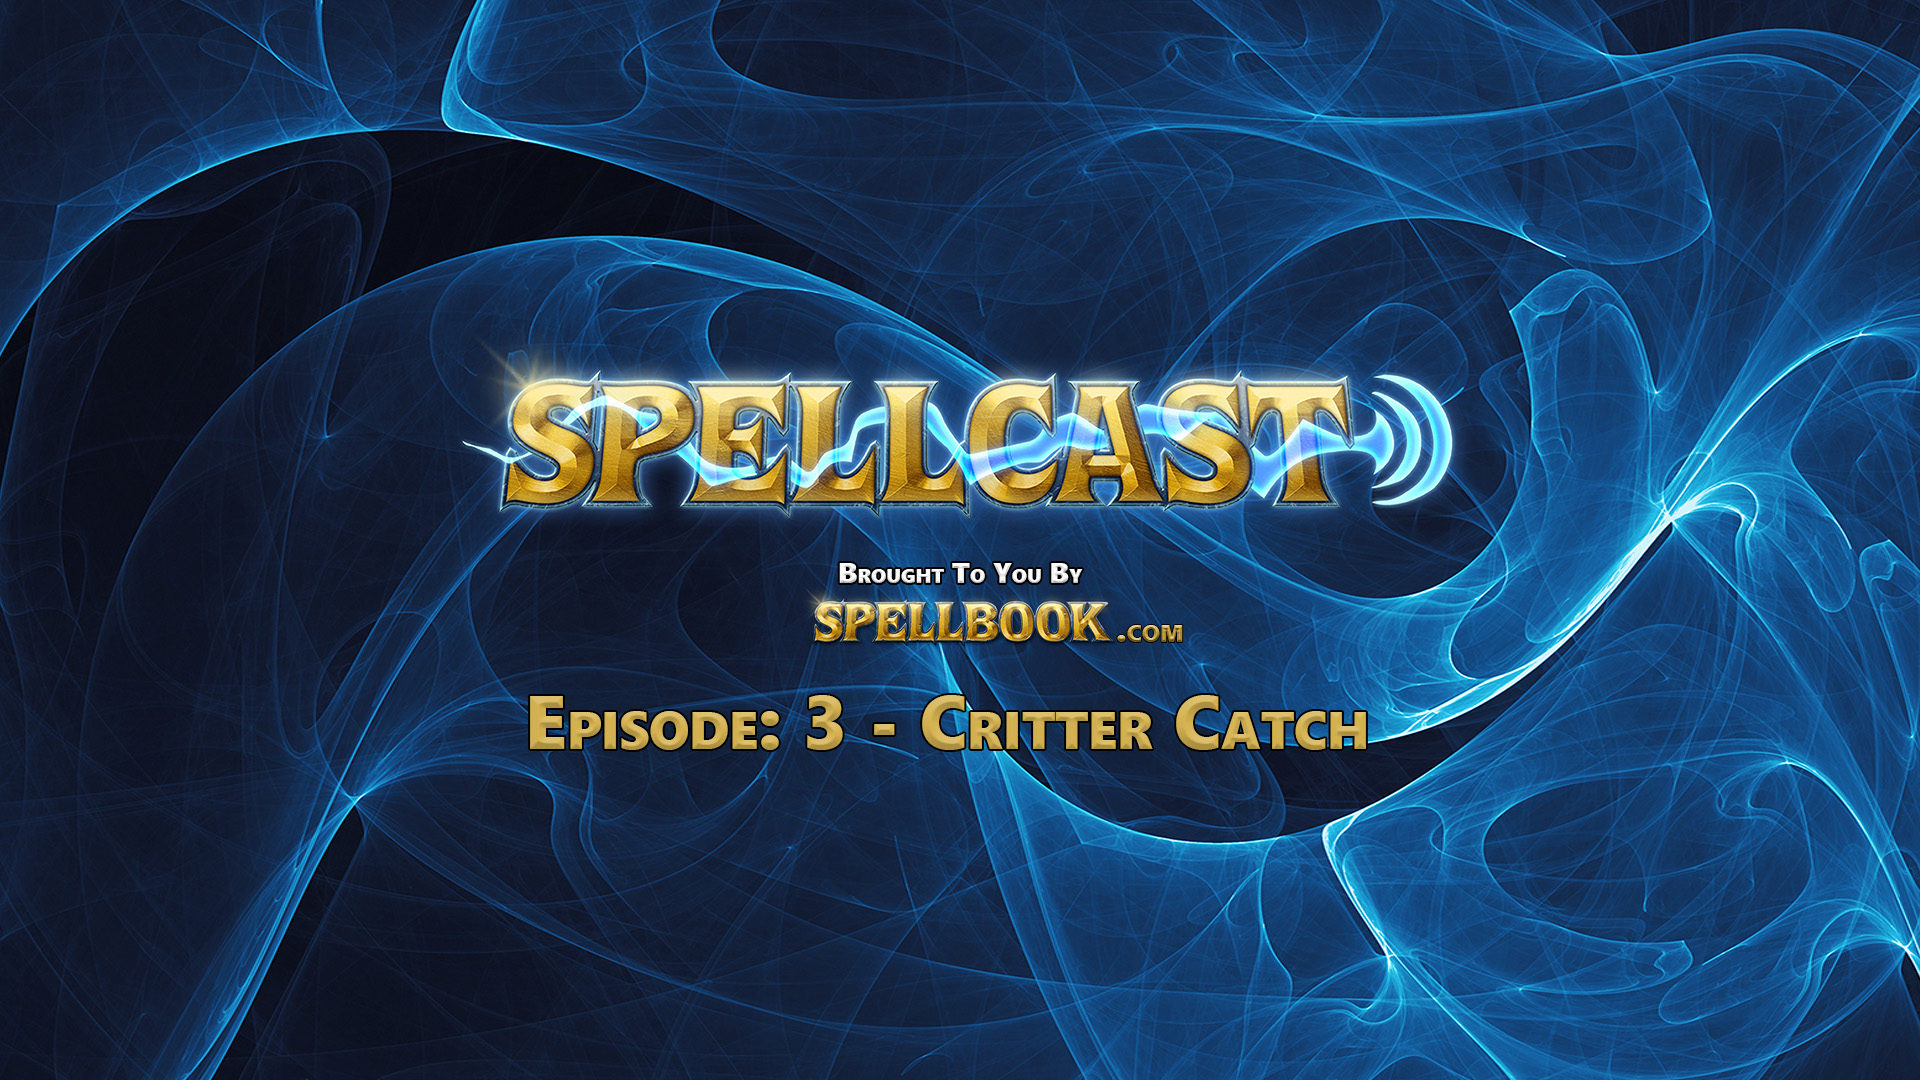 Spellcast Episode: 3 - Critter Catch